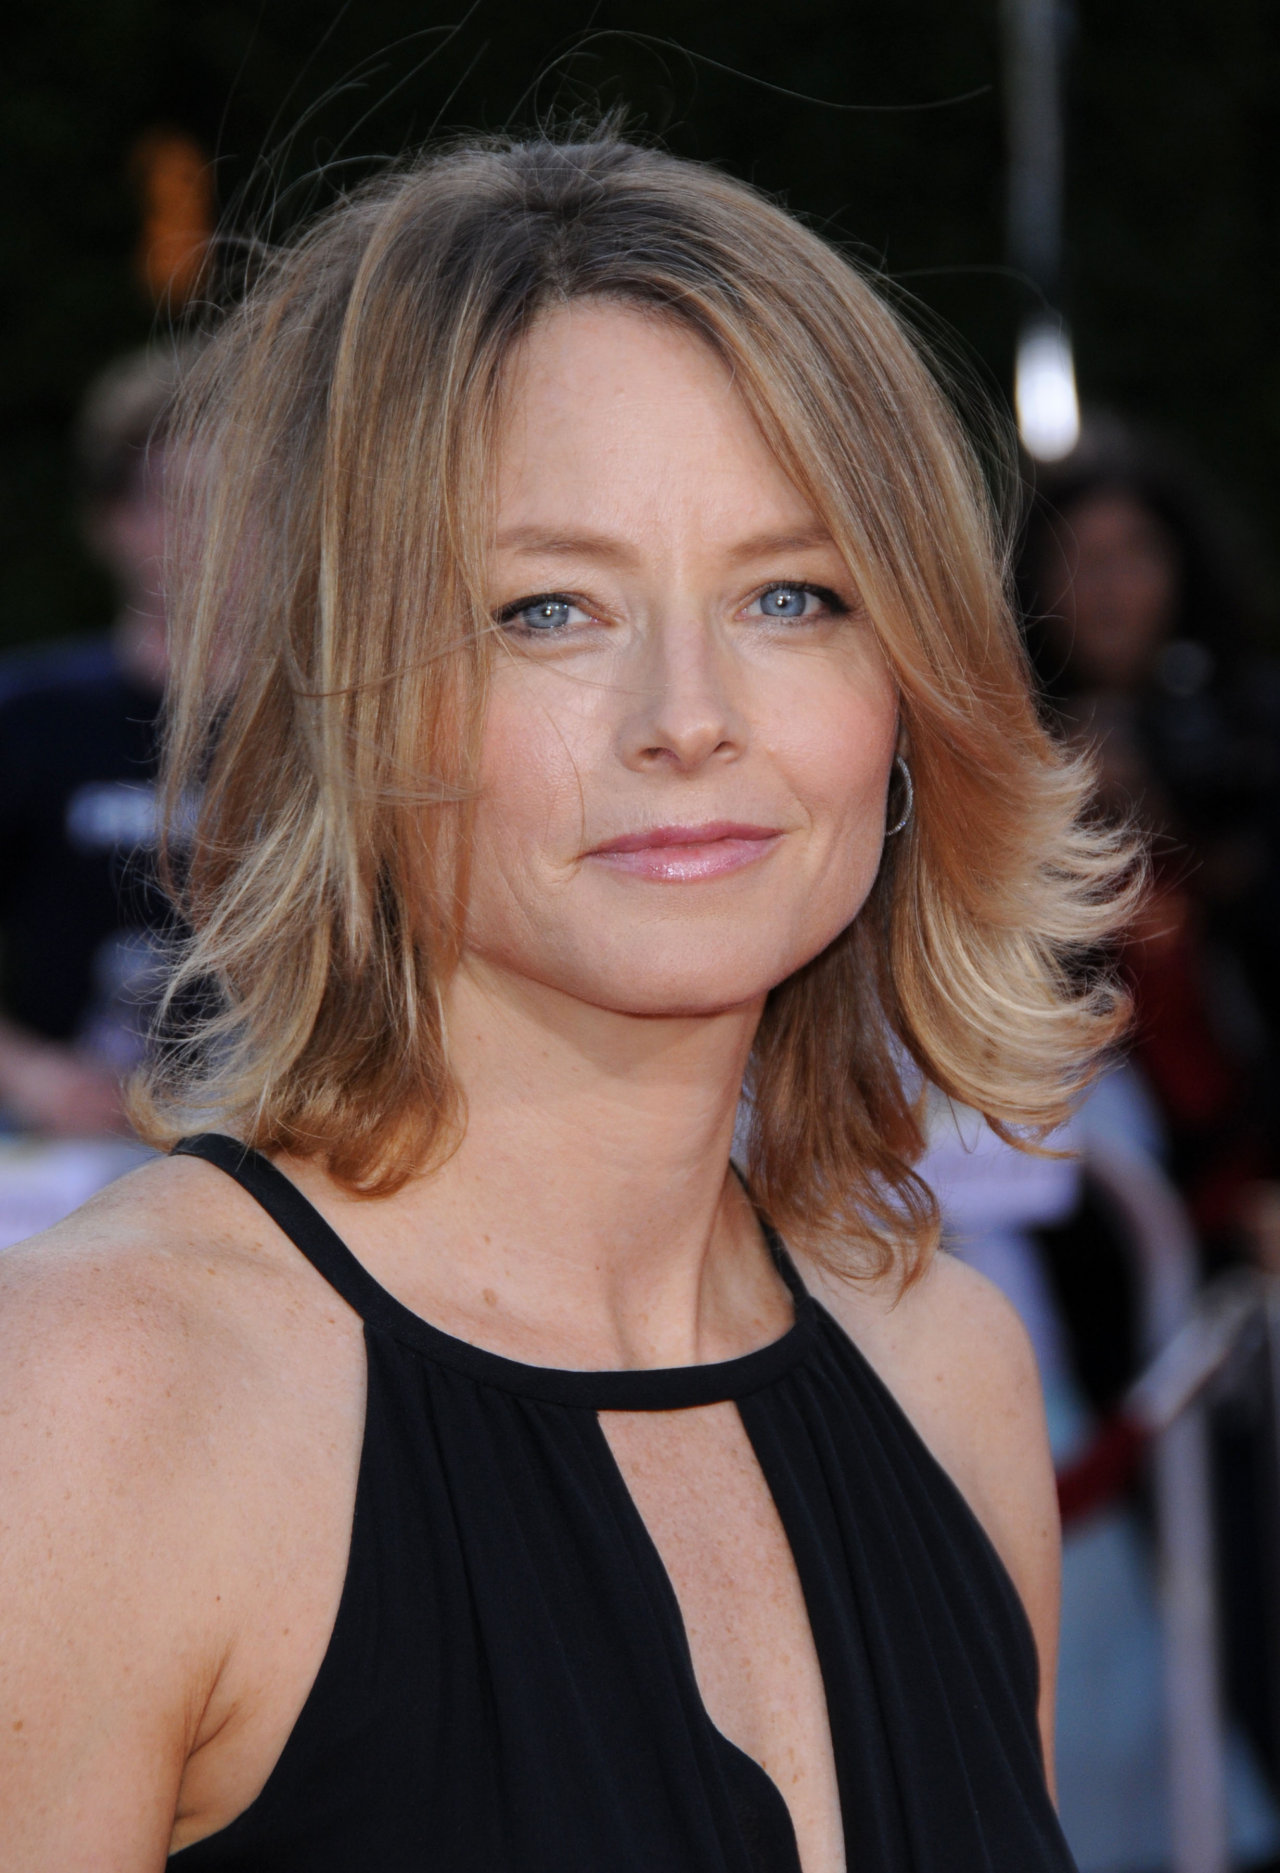 JODIE FOSTER @ the premiere of 'Tropic Thunder' held @ the Mann's Village theatre. August 11, 2008